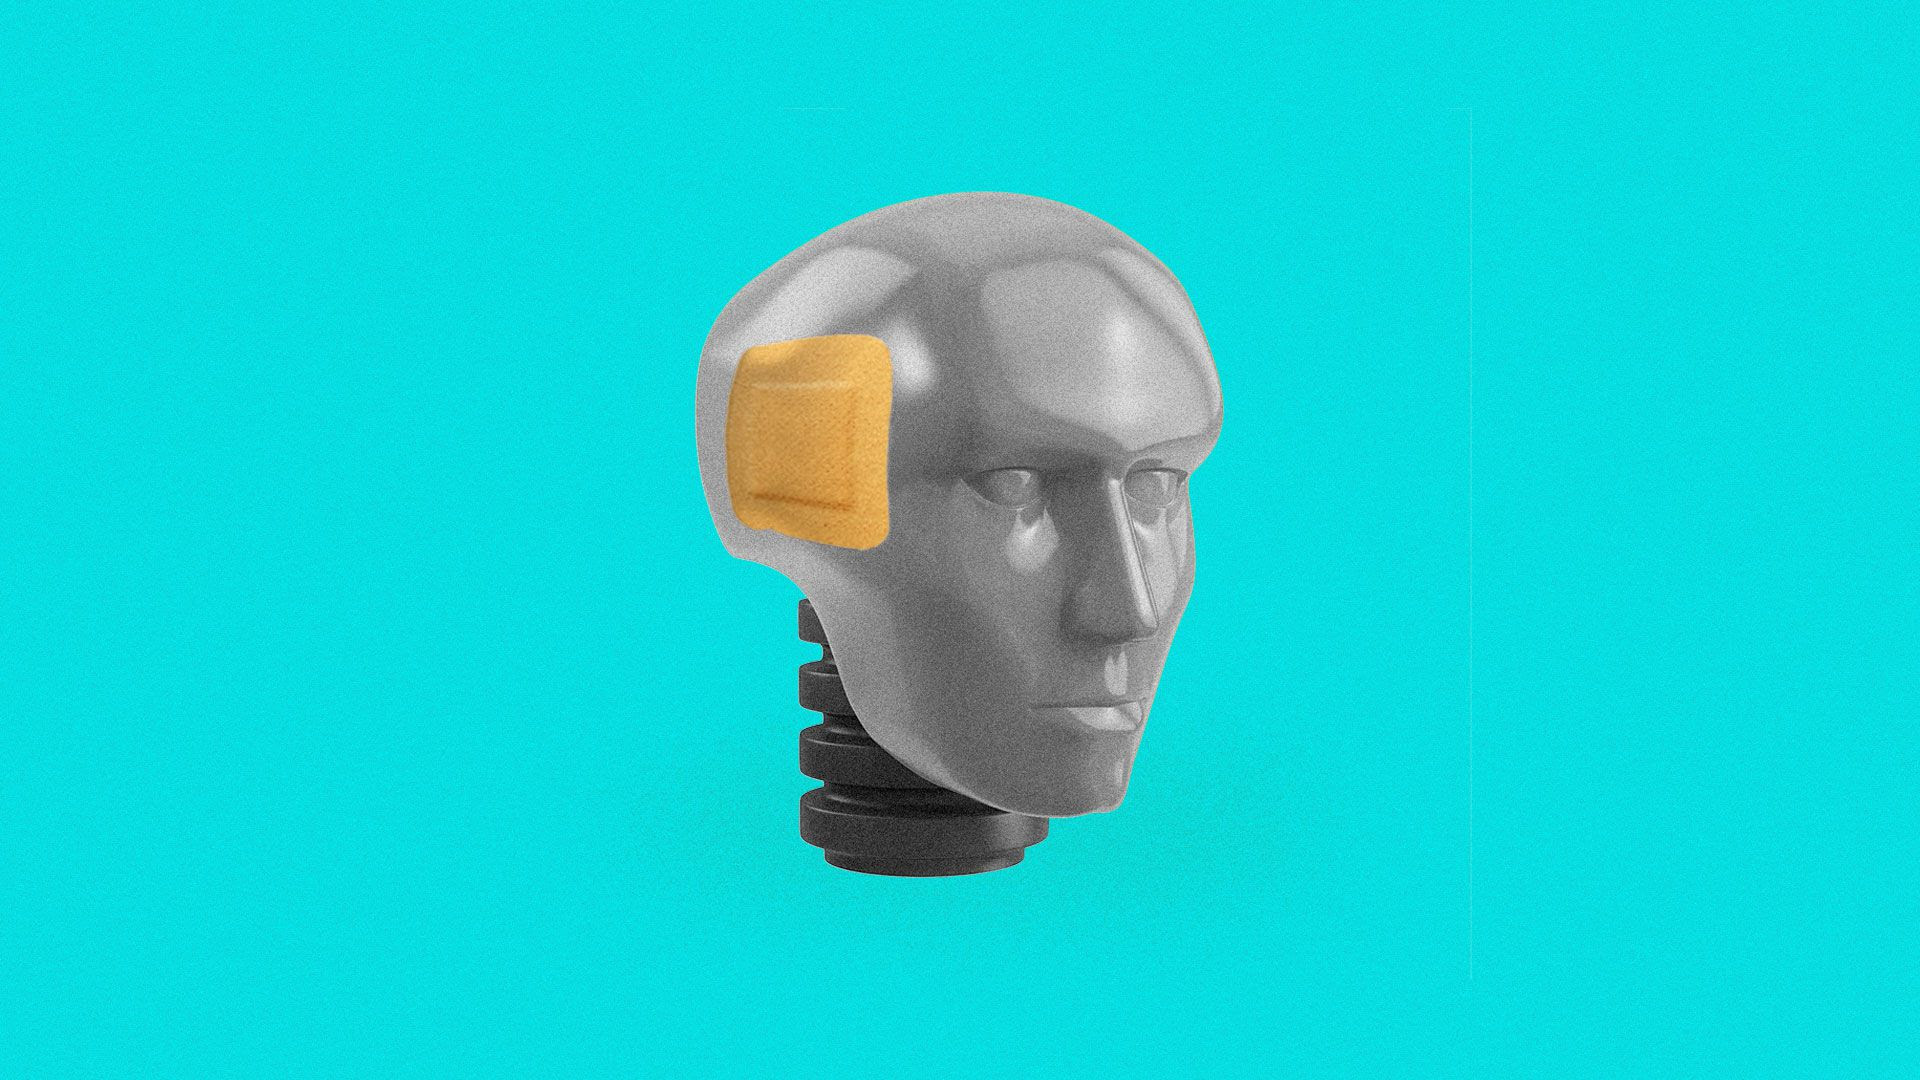 Illustration of a crash dummy head with a Band-Aid on its temple